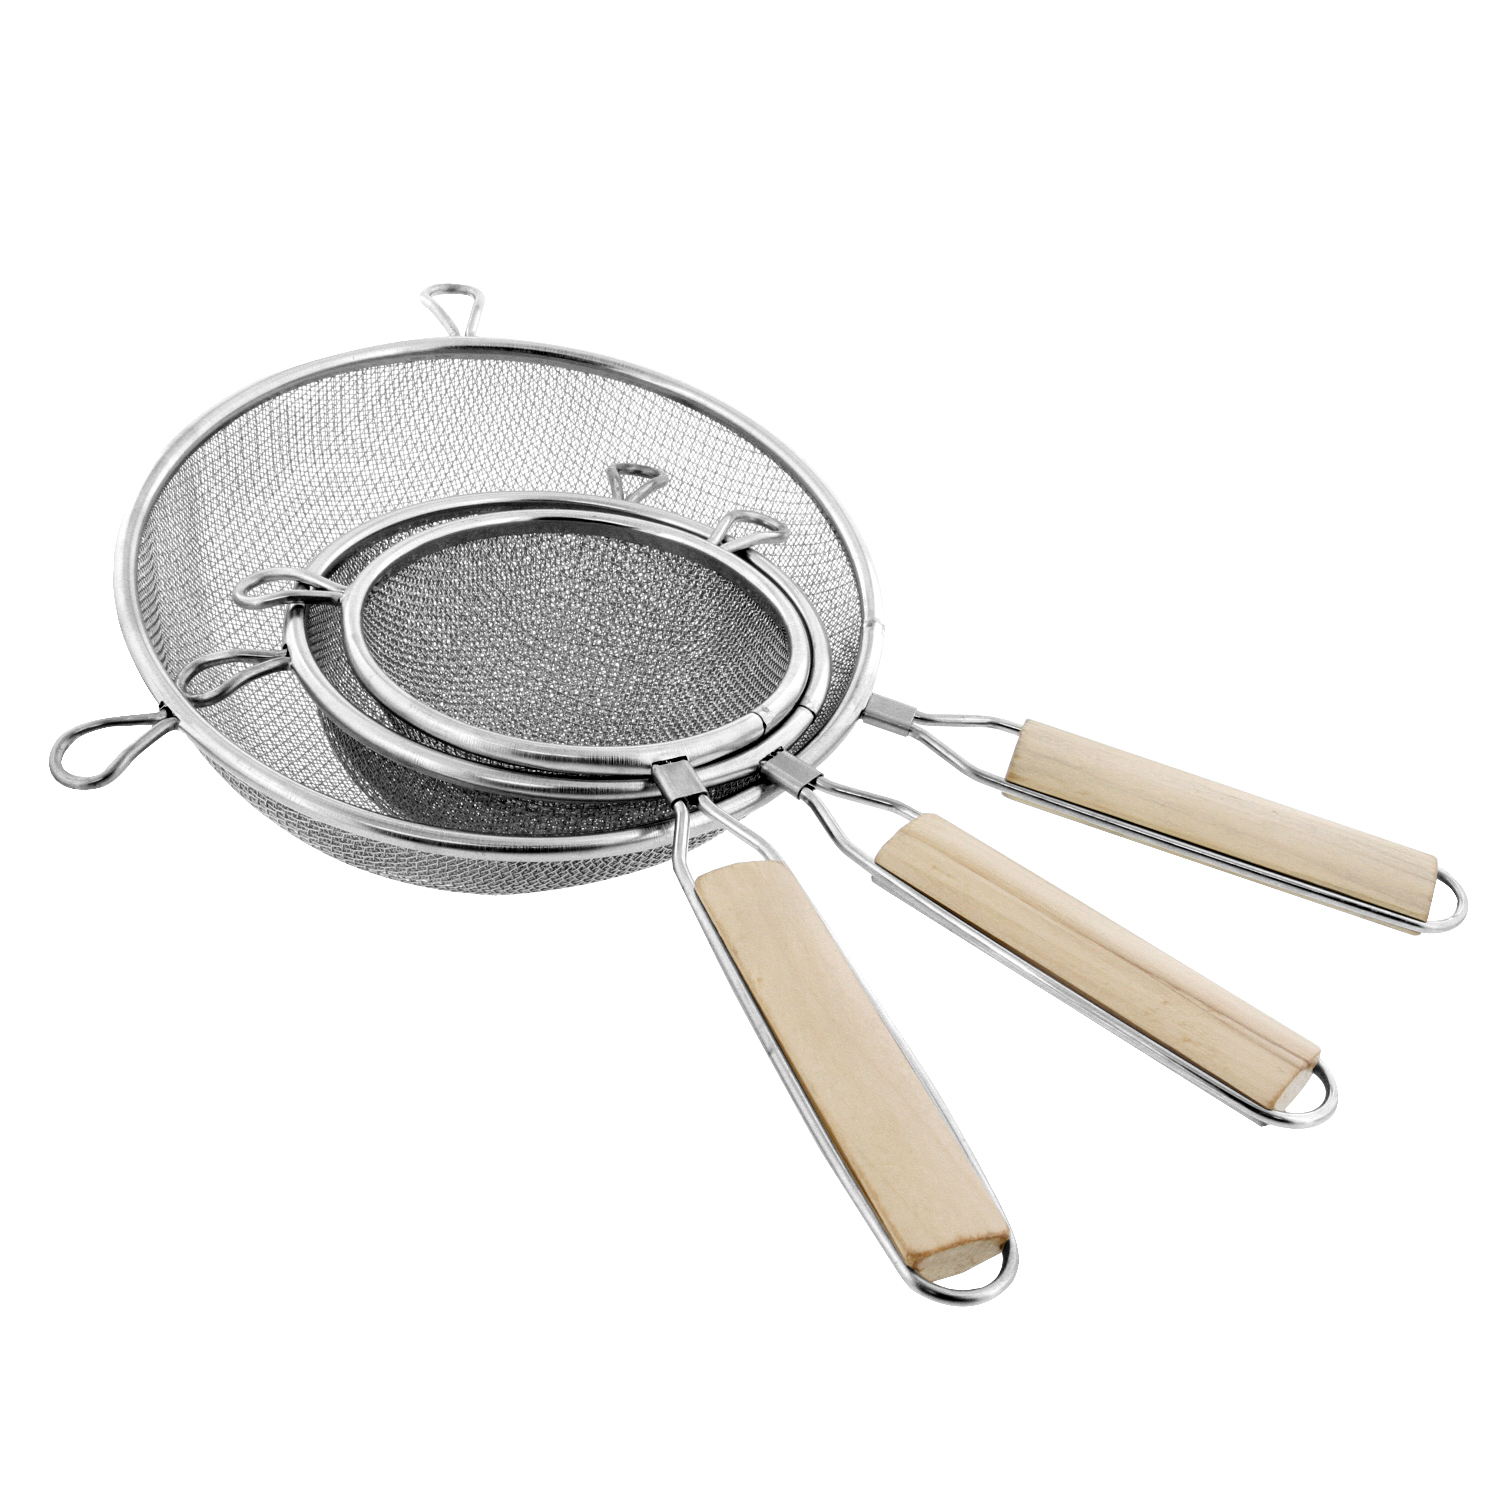 U.S. Kitchen Supply Set of 3 Double Mesh Extra Fine Stainless Steel Strainers w  Comfortable Wooden Handles, 4\ by TCP Global Corp